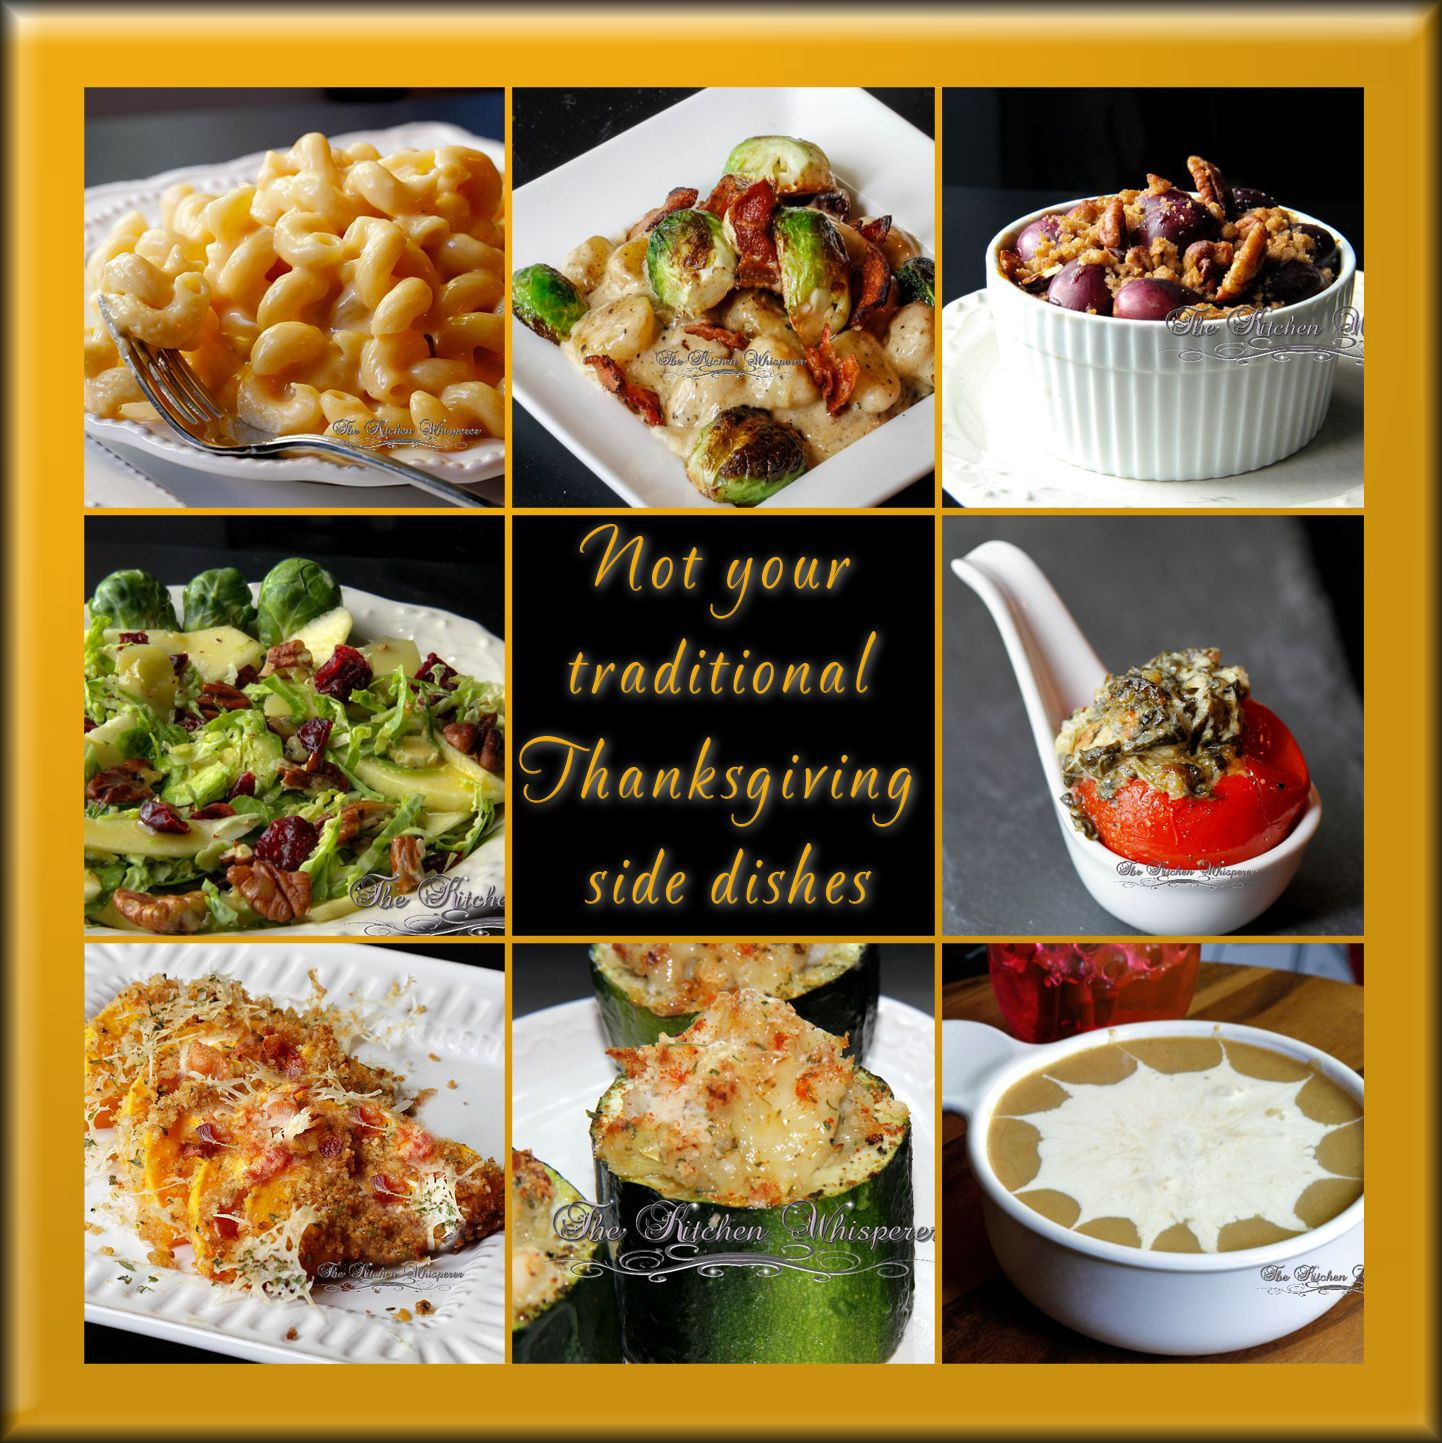 Traditional Thanksgiving Side Dishes  Not your traditional Thanksgiving side dishes